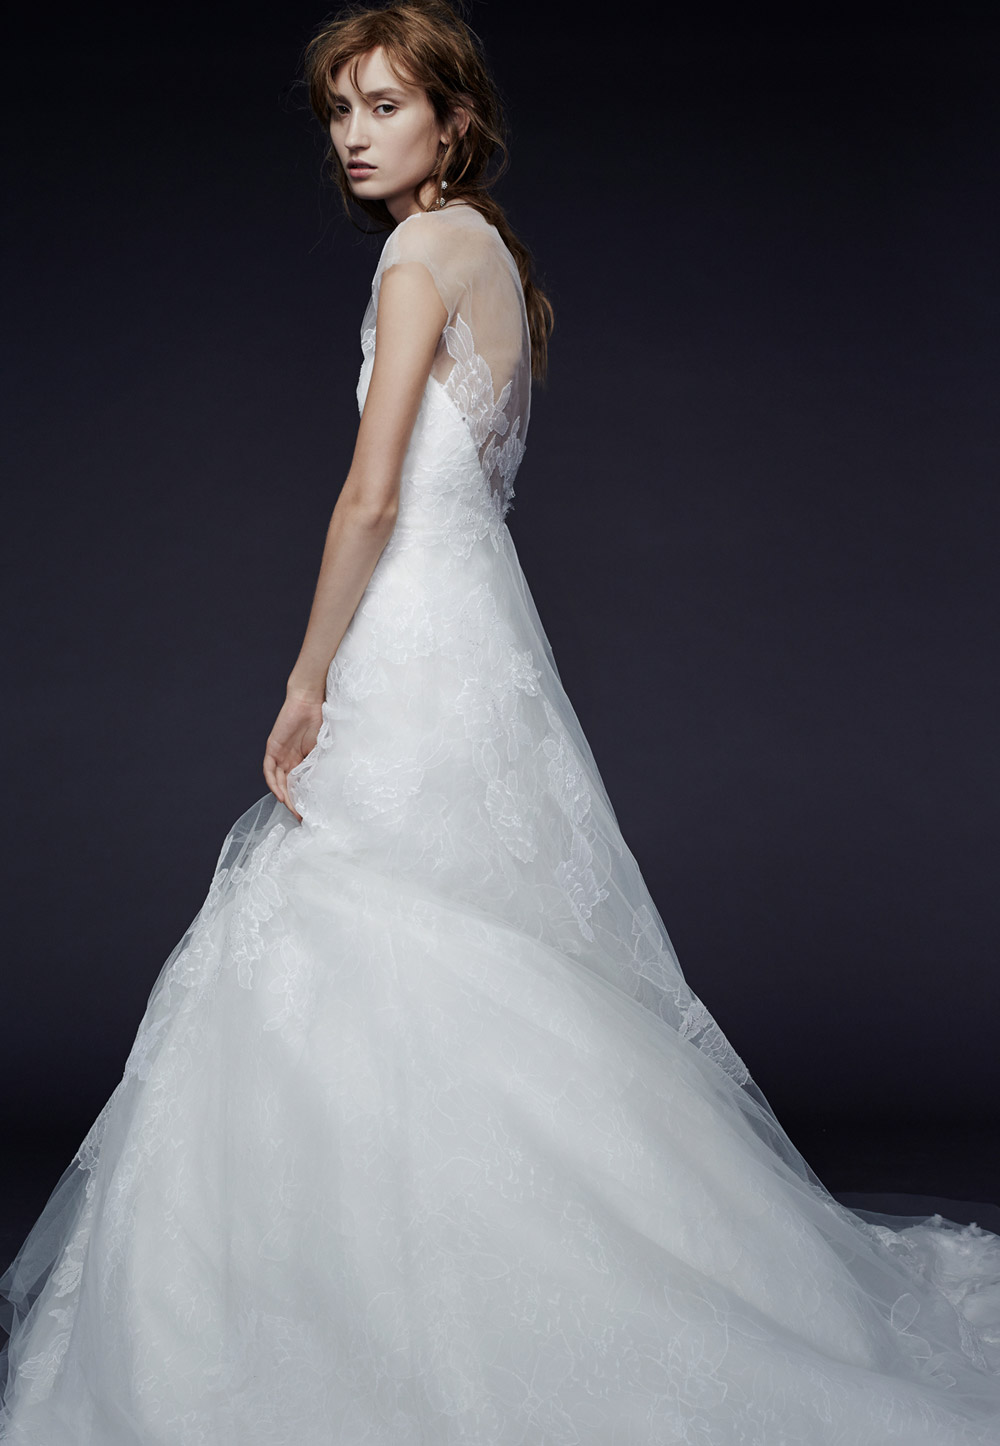 Vera wang fall 2015 collection the wedding notebook magazine for New vera wang wedding dresses